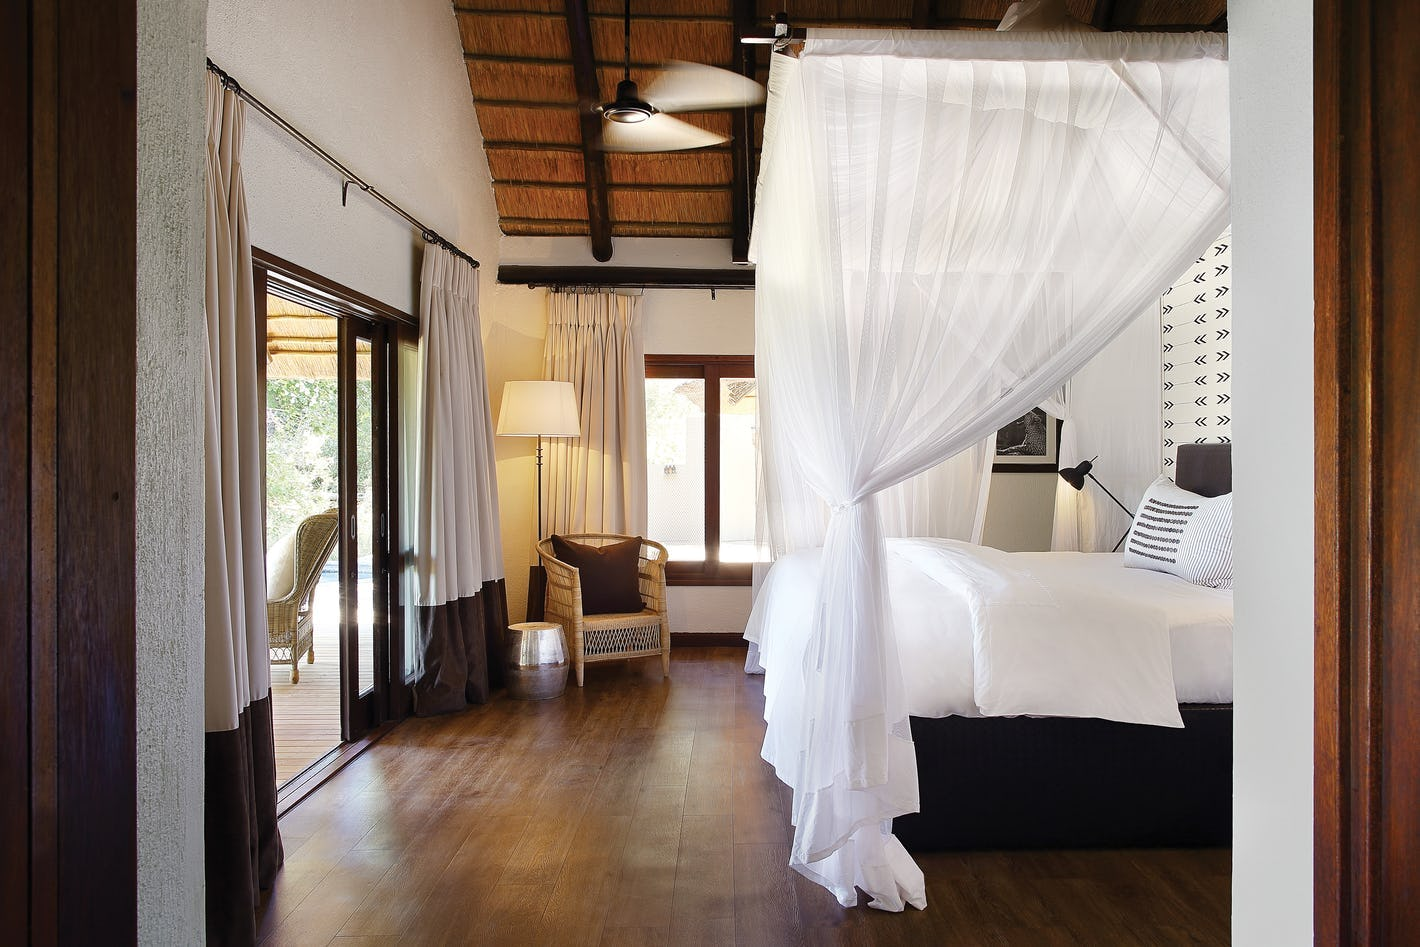 Best lodges in South Africa